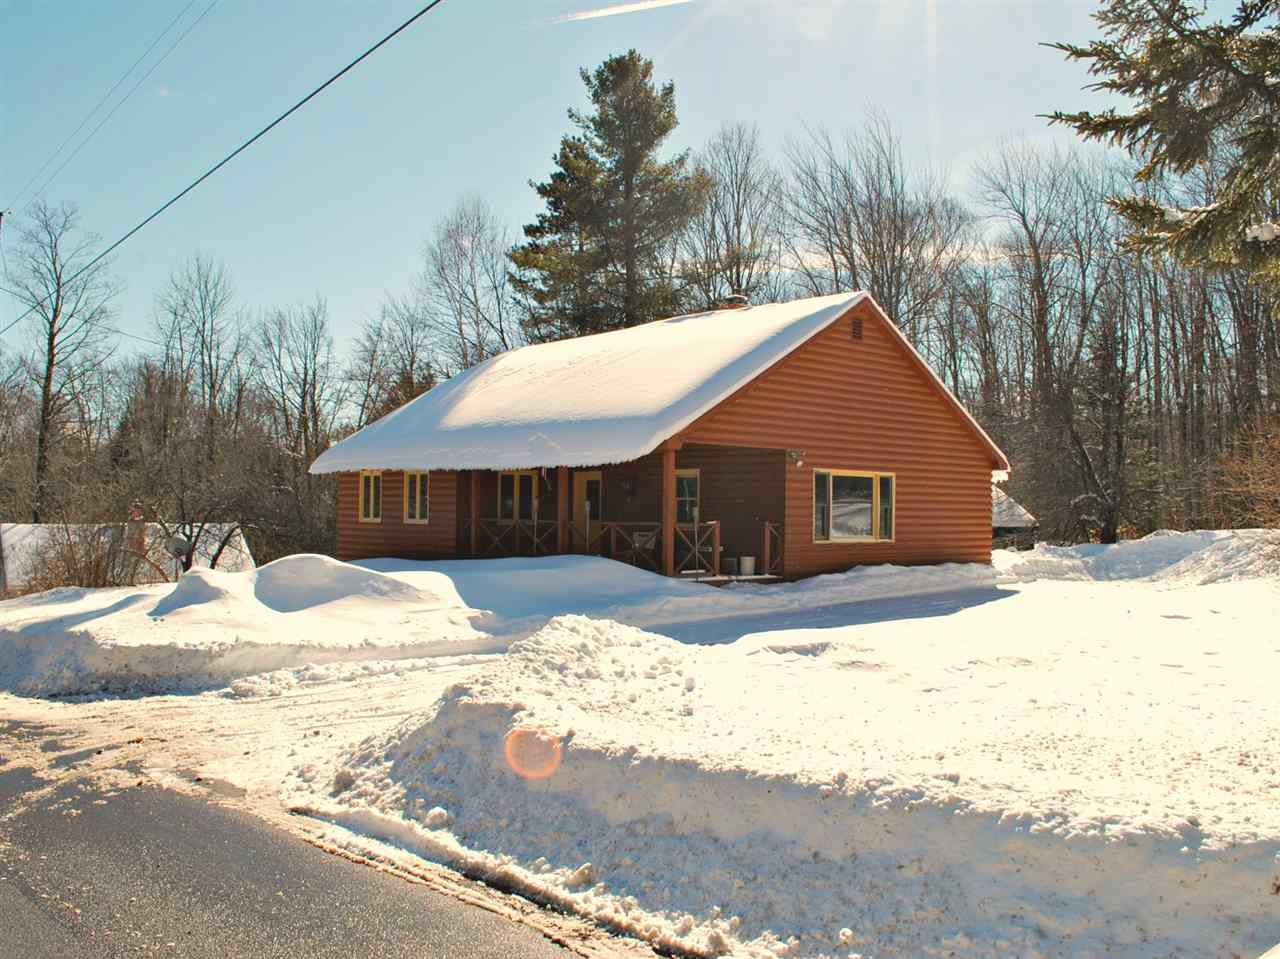 669 Stratton Arlington Road, Stratton, VT 05360